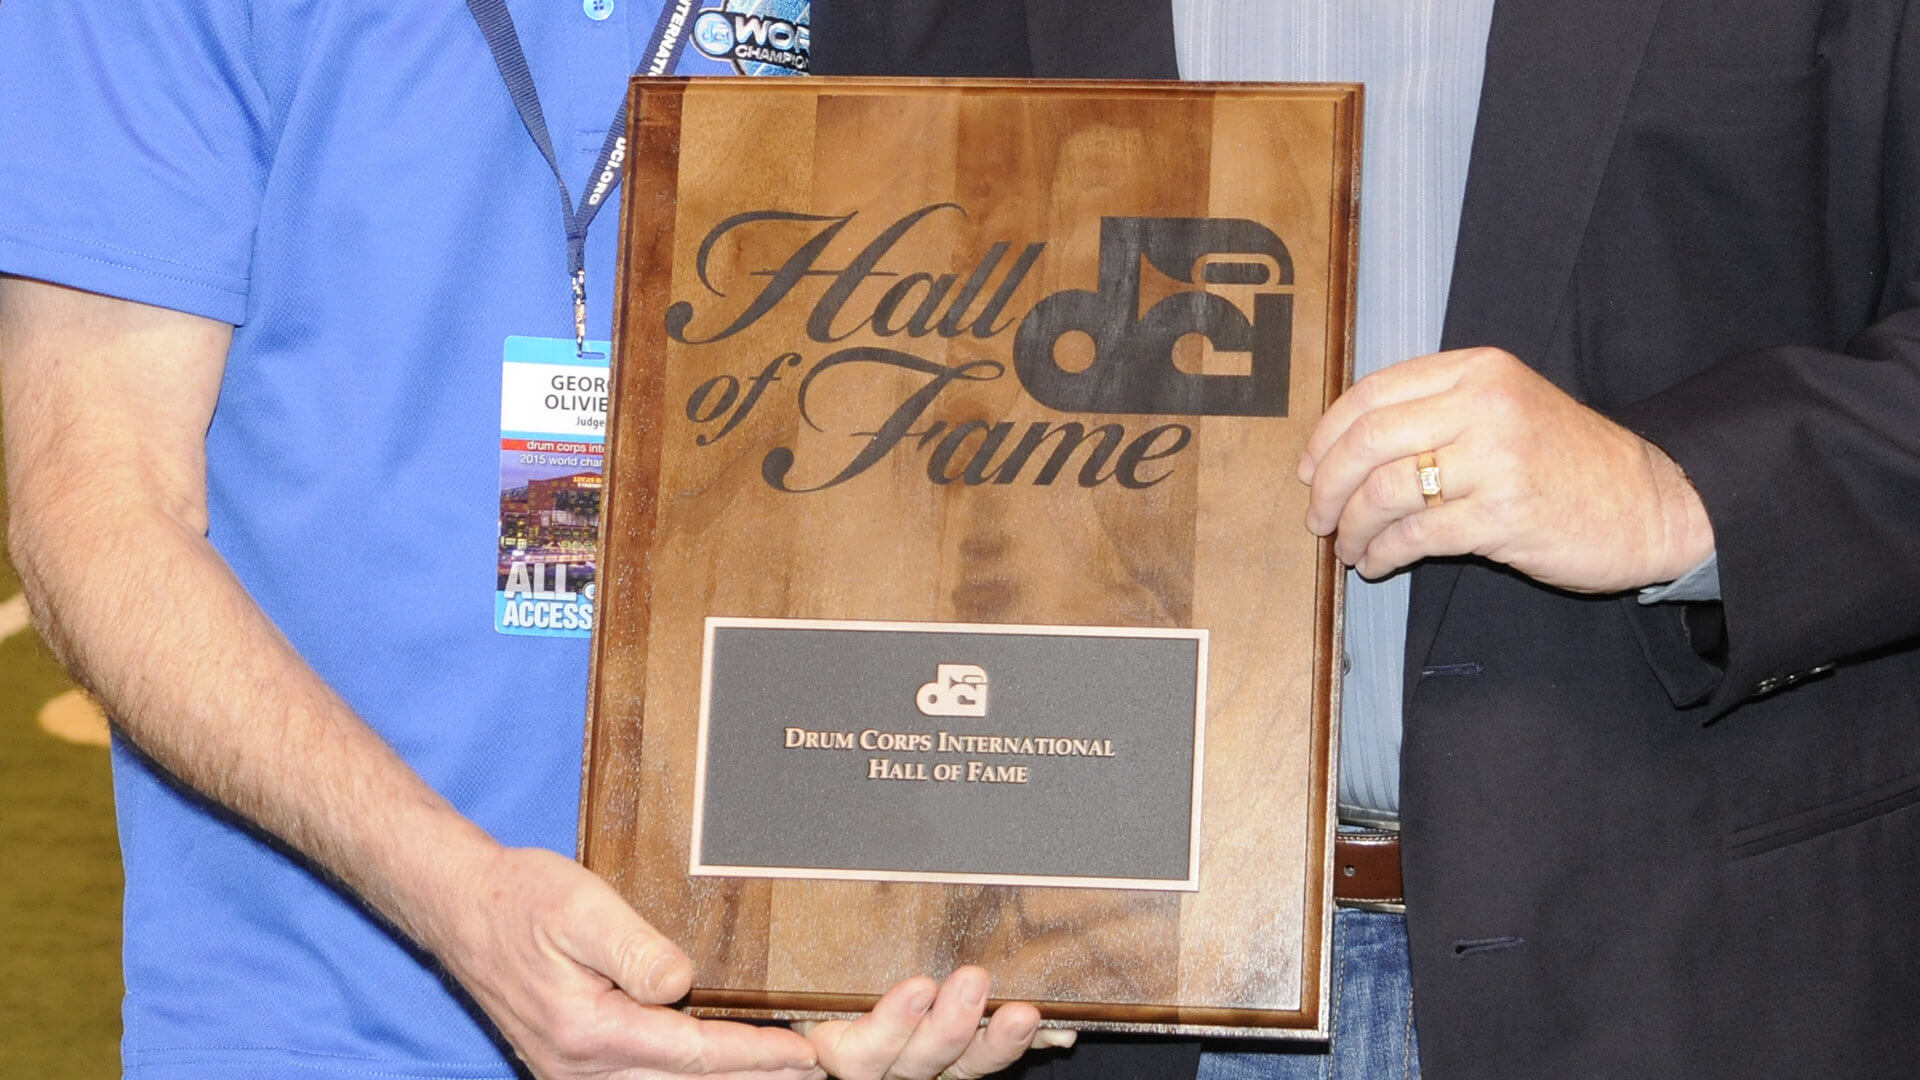 Introducing the DCI Hall of Fame Class of 2016